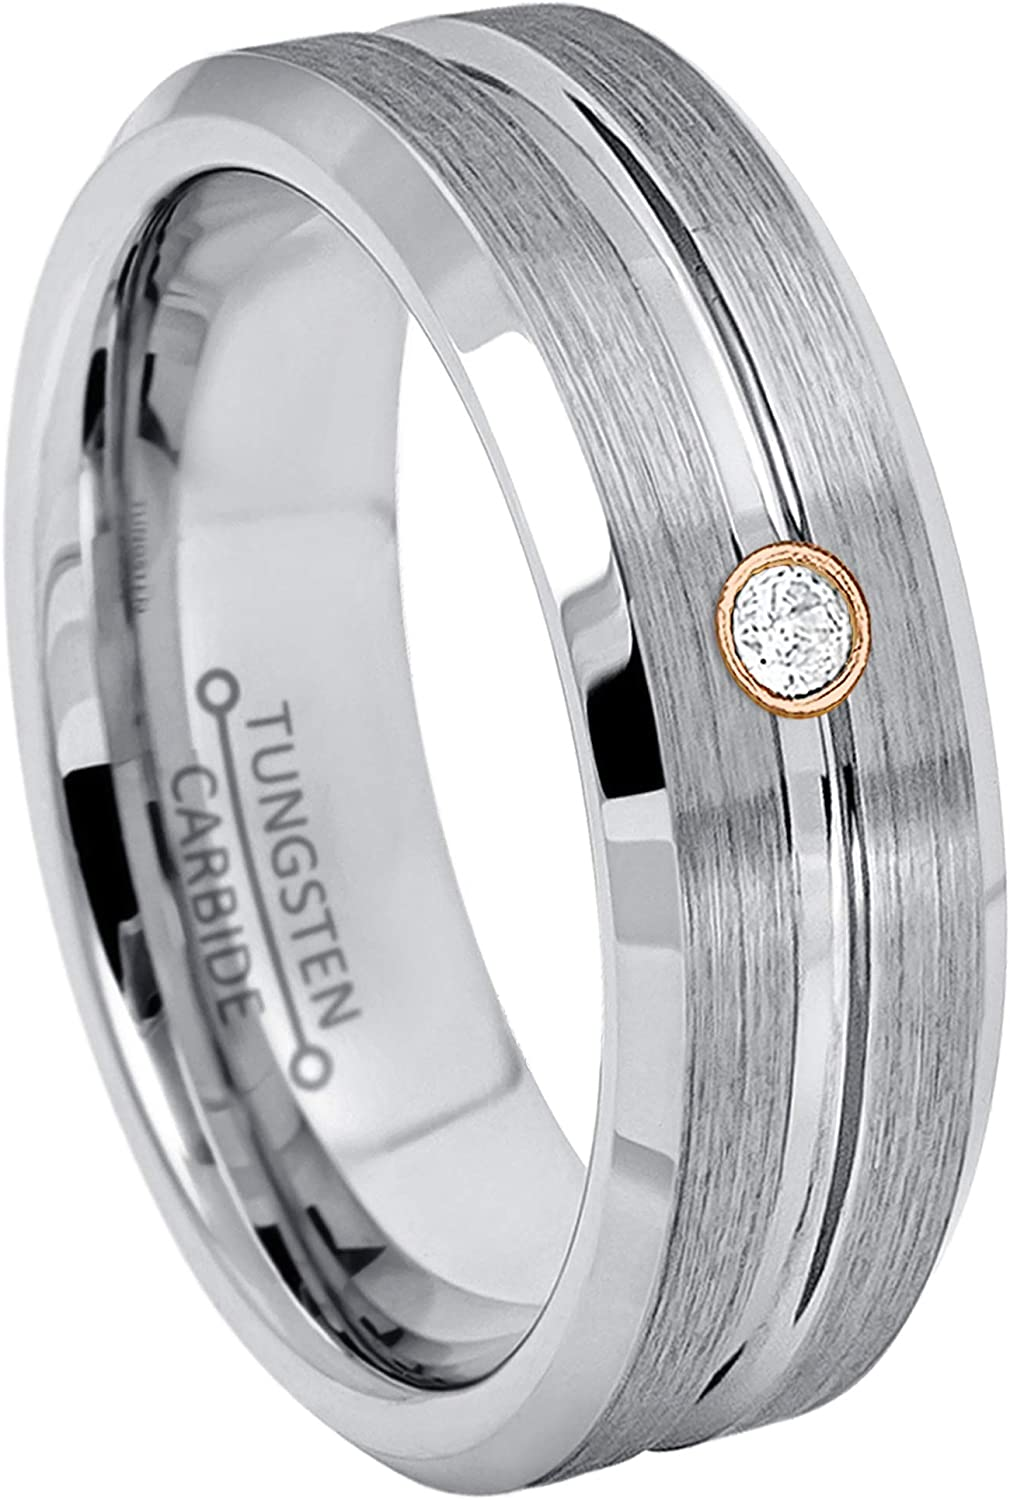 Jewelry Avalanche 正規逆輸入品 7MM Brushed Grooved Center 在庫処分 Edge Beveled Tungst